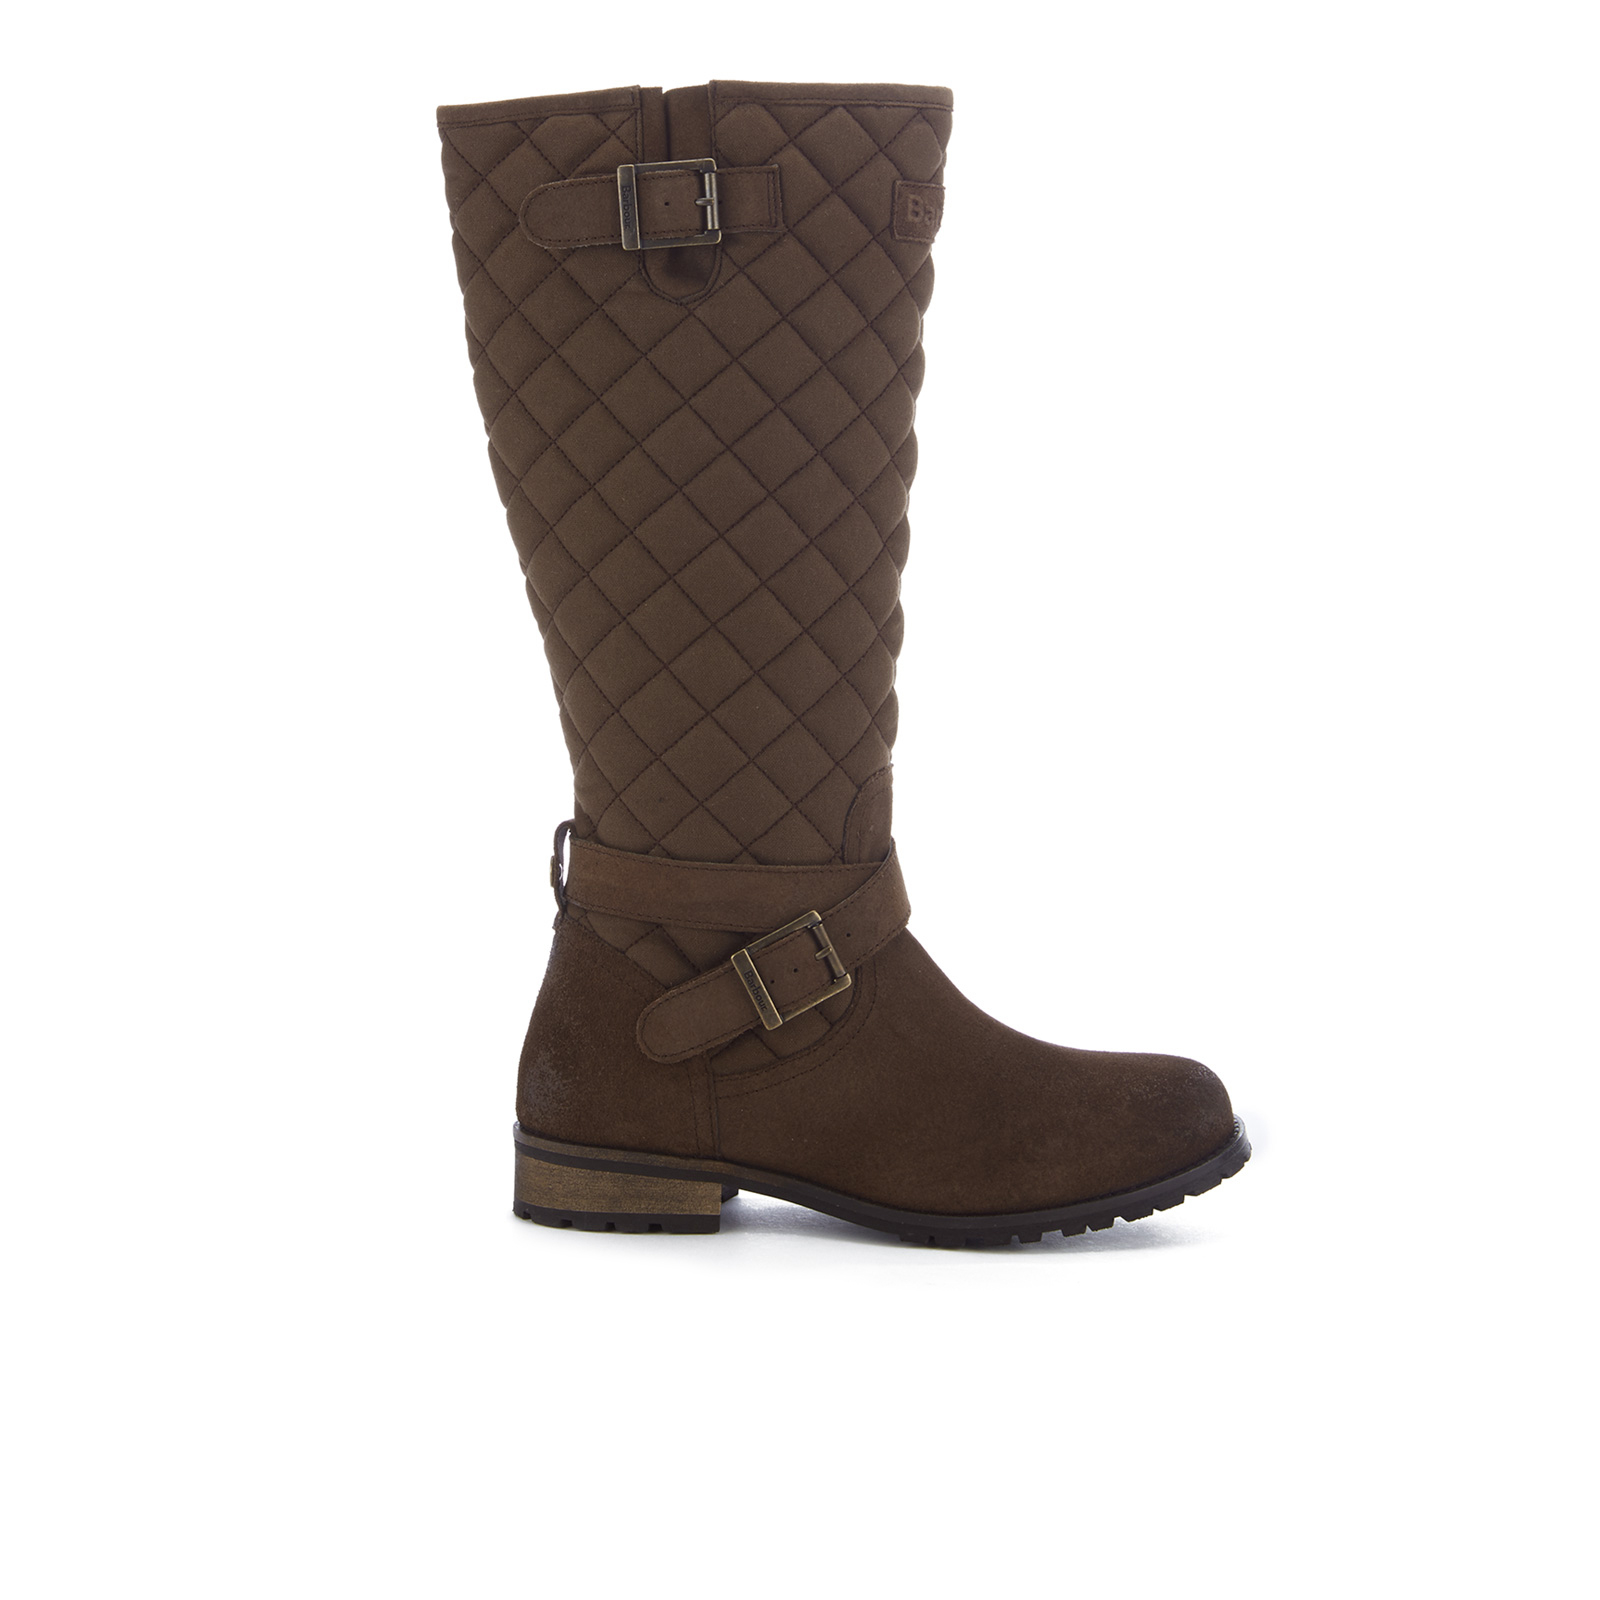 fe16c702 Barbour Women's Holford Waxy Suede Quilted Knee Boots - Brown Womens  Footwear | TheHut.com